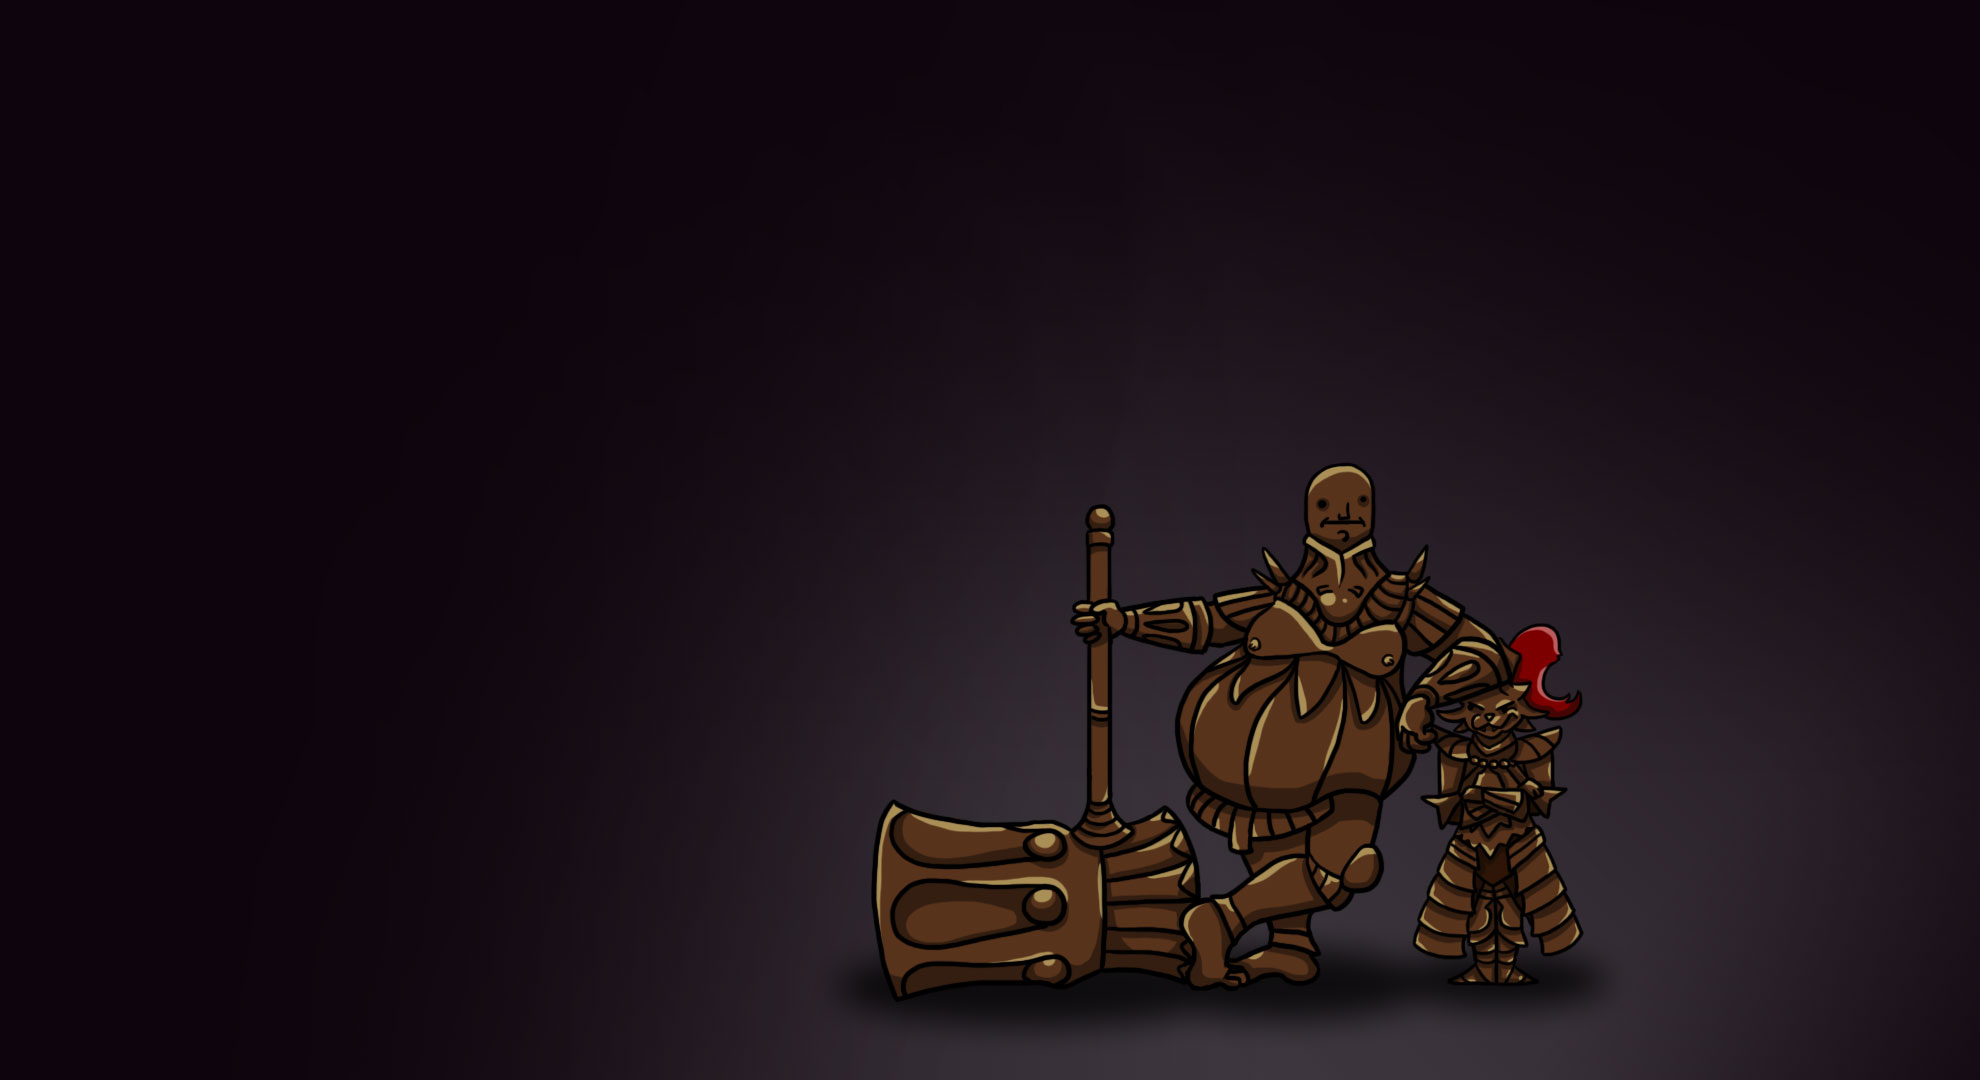 Dark Souls Ornstein And Smough Wallpapers High Quality Is Cool Wallpapers